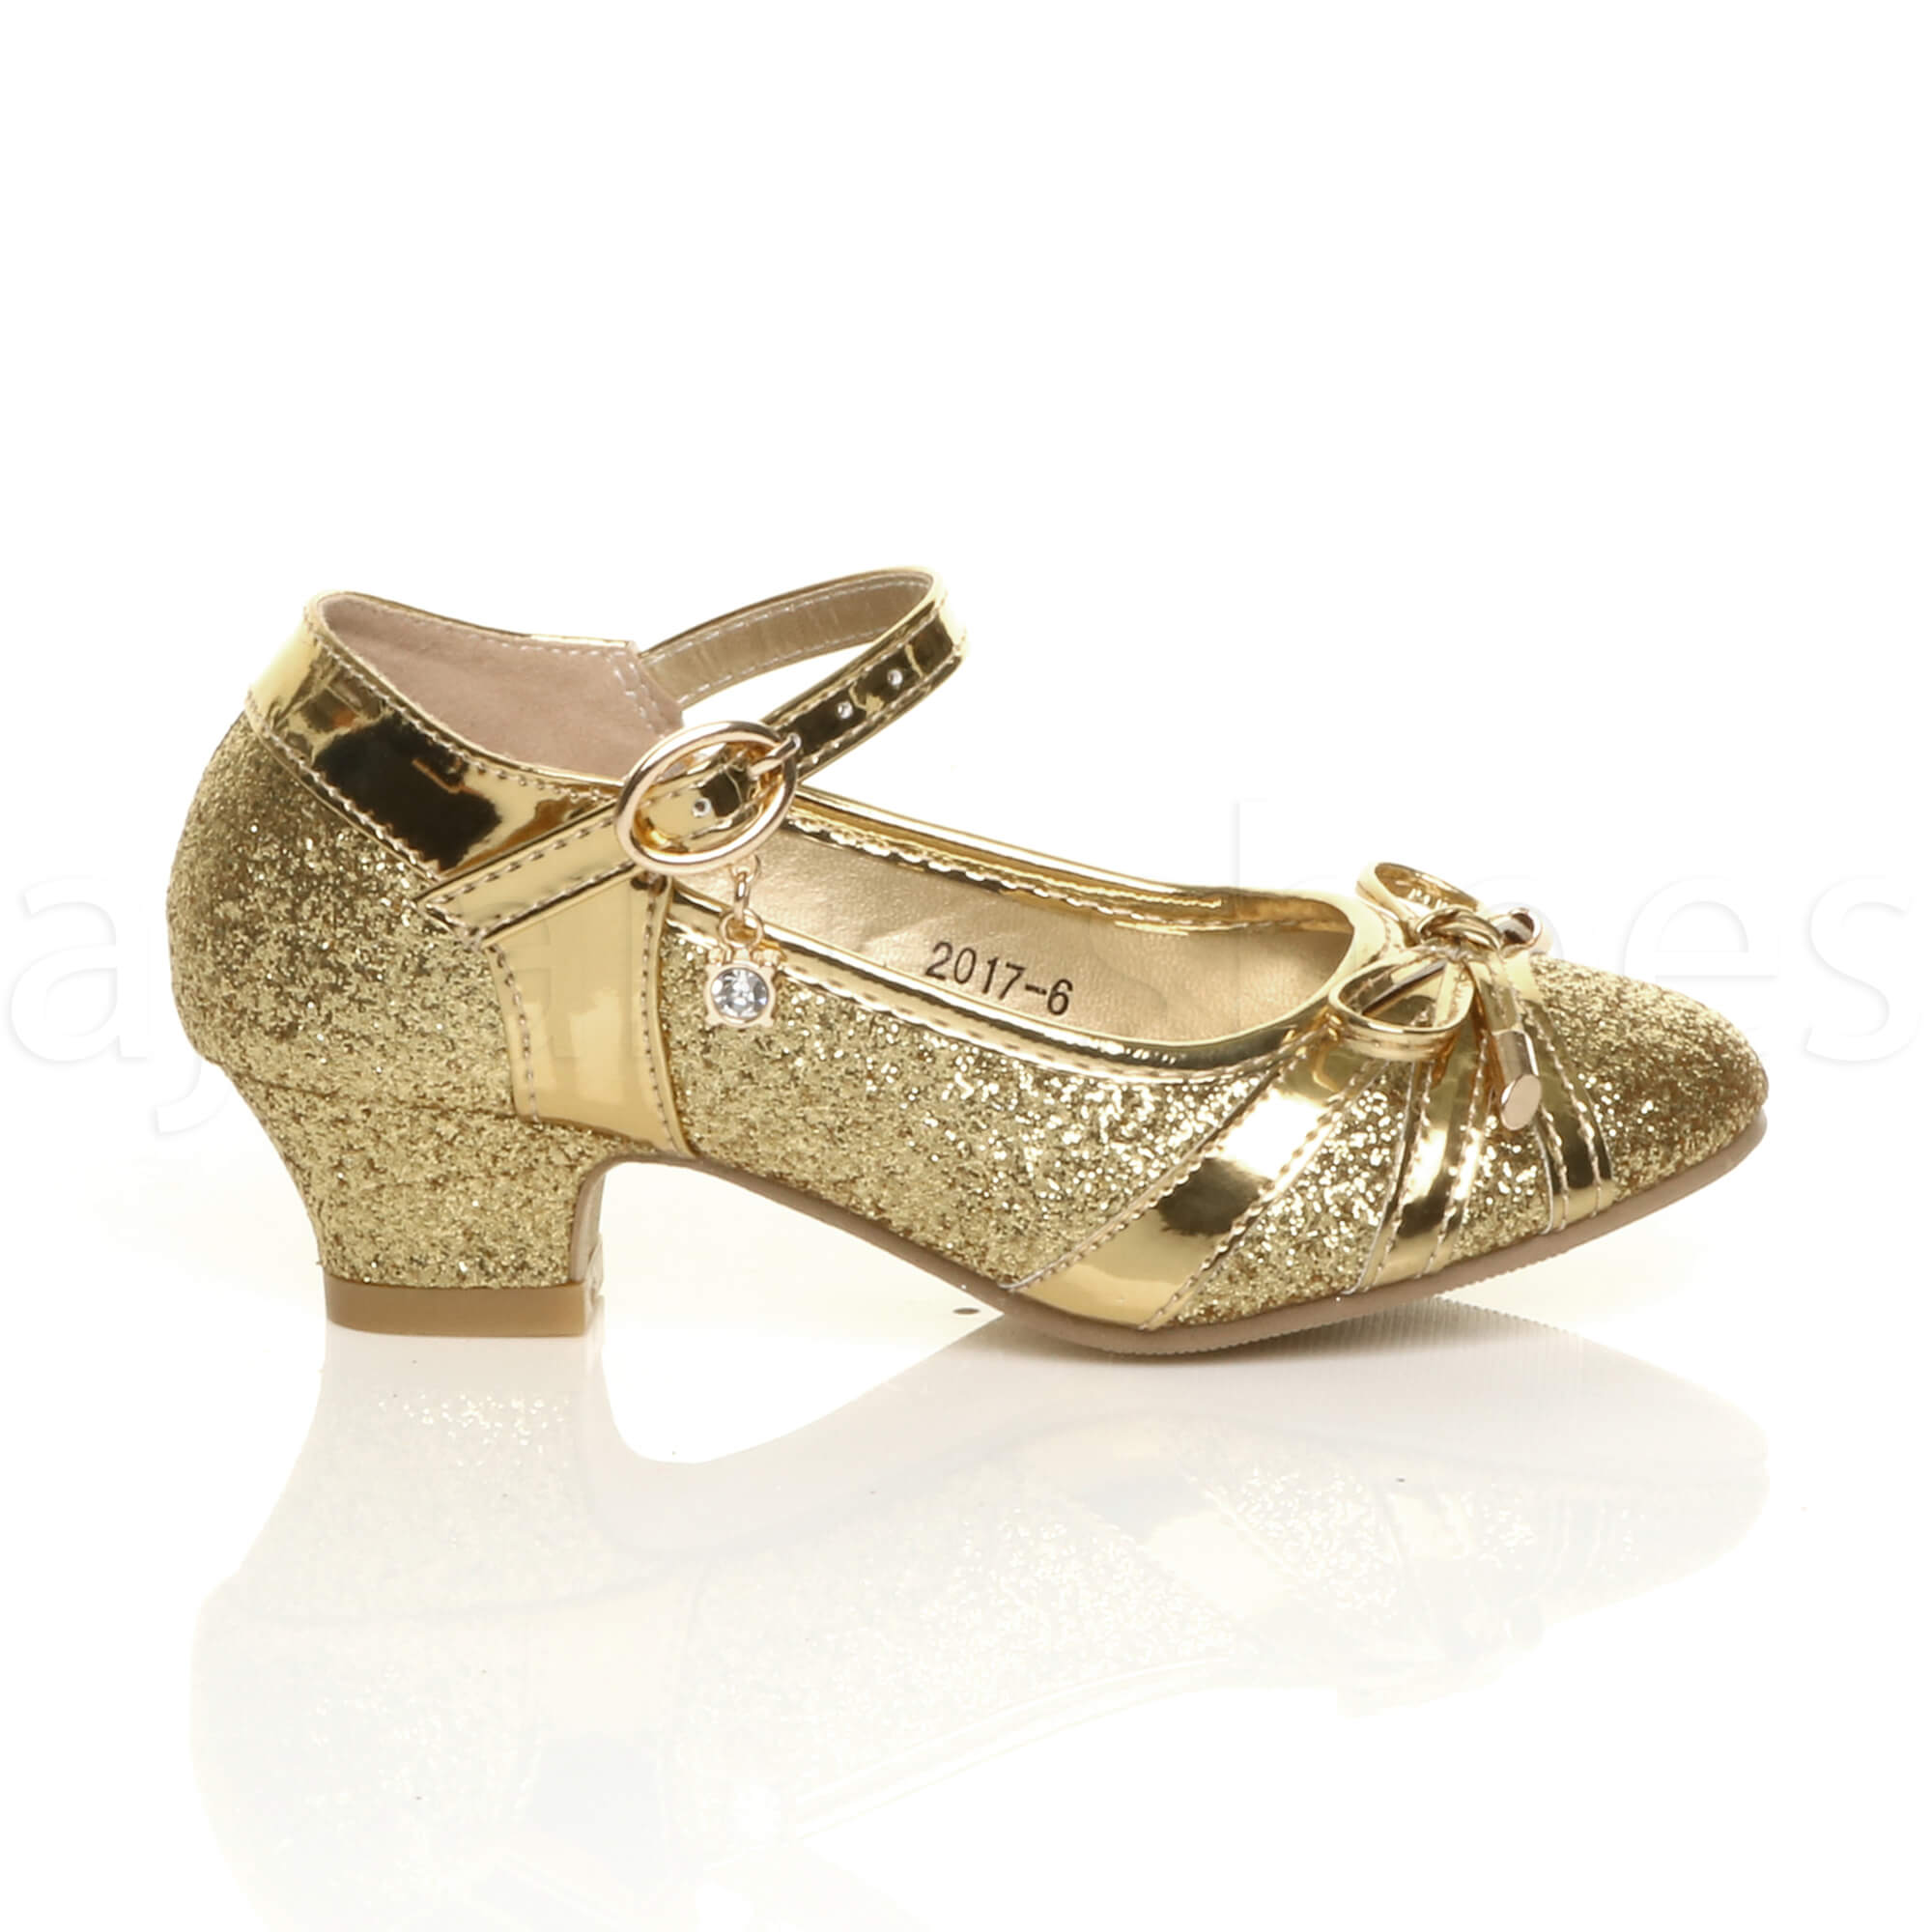 GIRLS KIDS CHILDRENS LOW HEEL DIAMANTE BOW MARY JANE GLITTER COURT SHOES SIZE